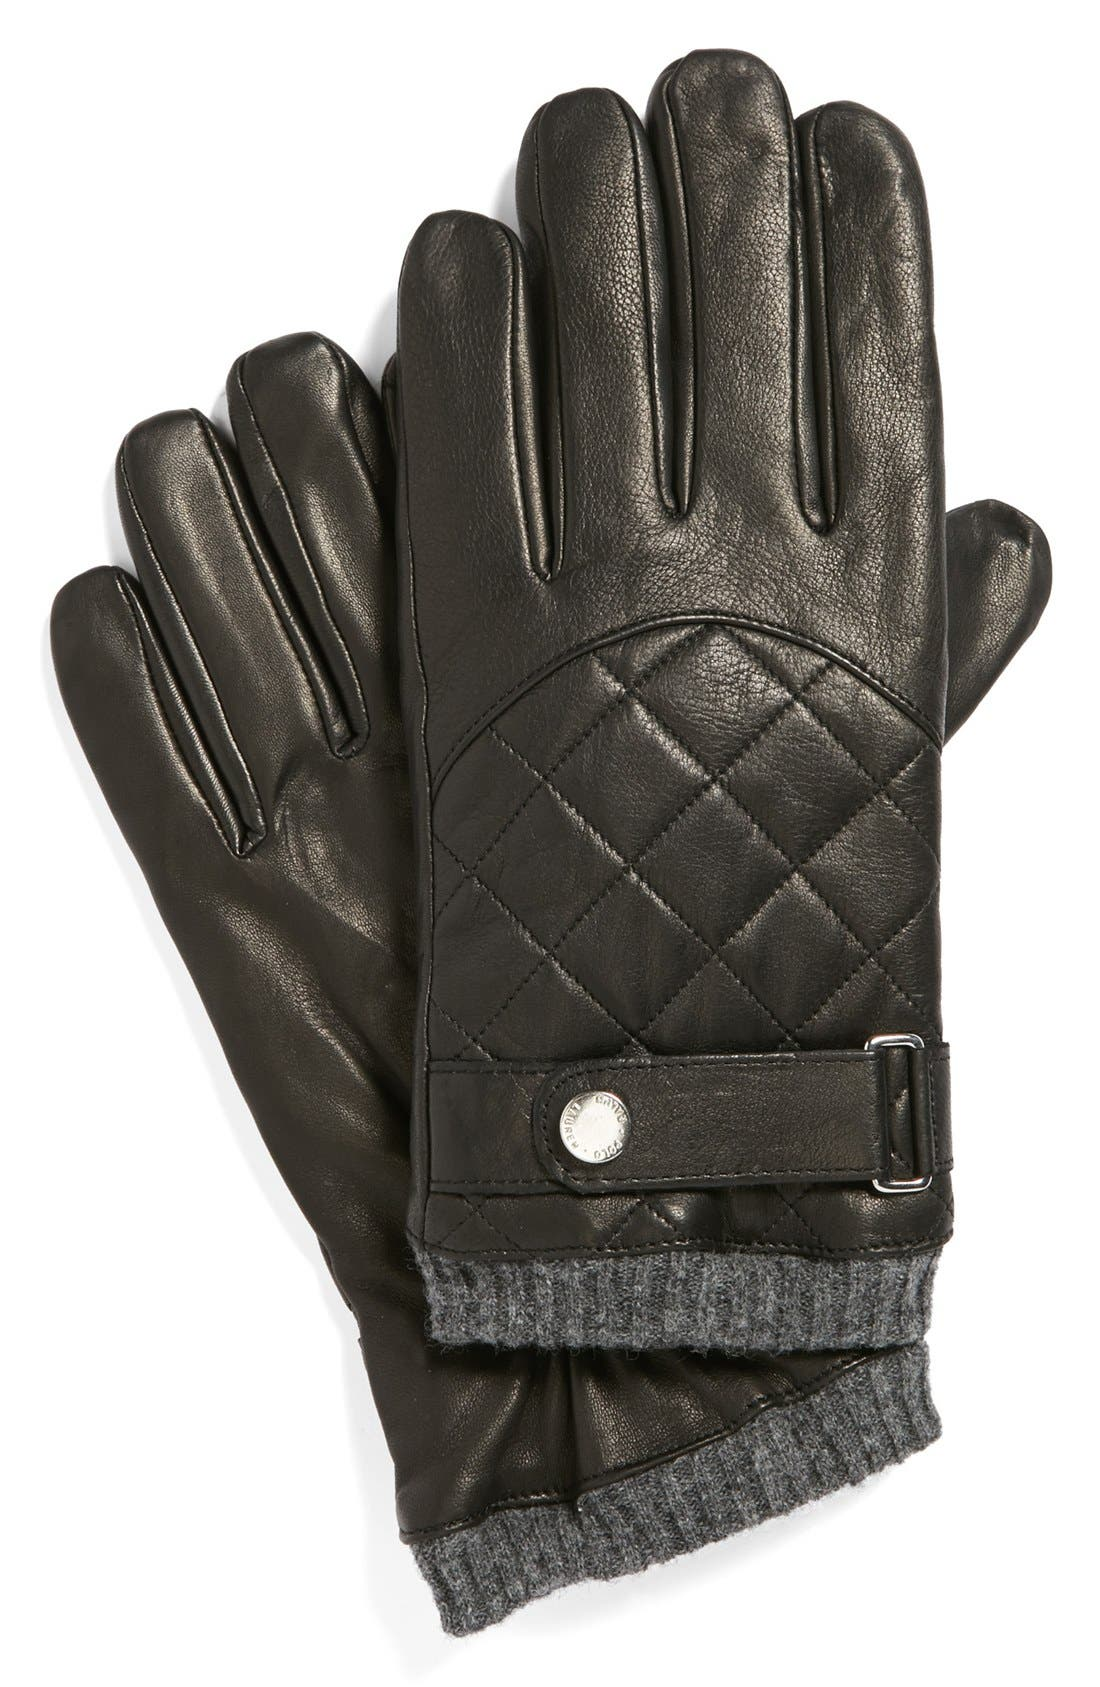 Leather driving gloves vancouver - Leather Driving Gloves Vancouver 8